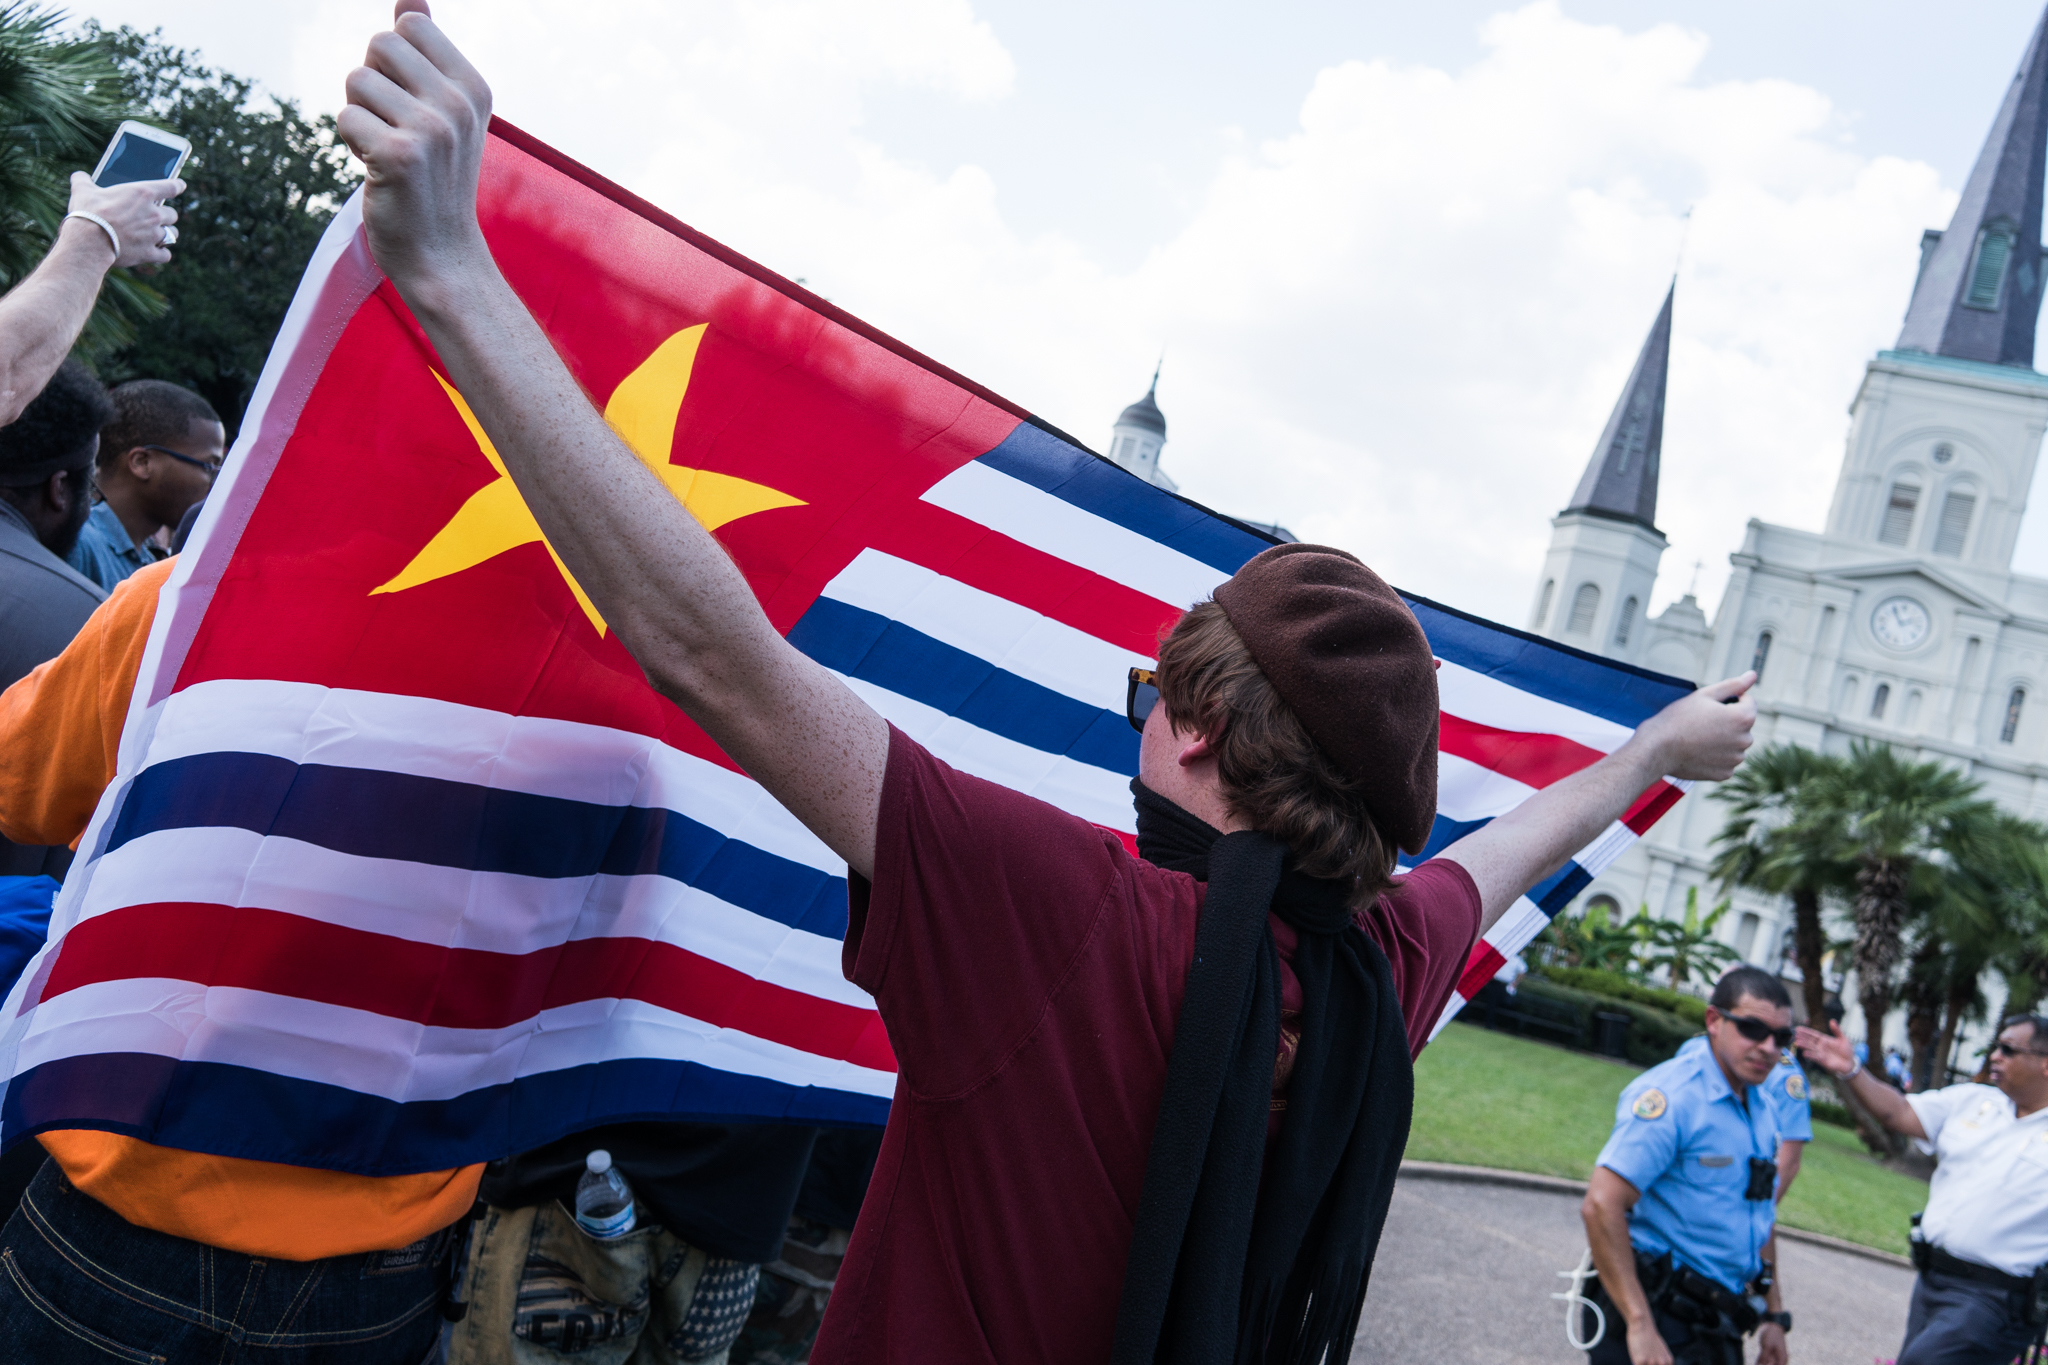 A protester holding a flag in Jackson Square.